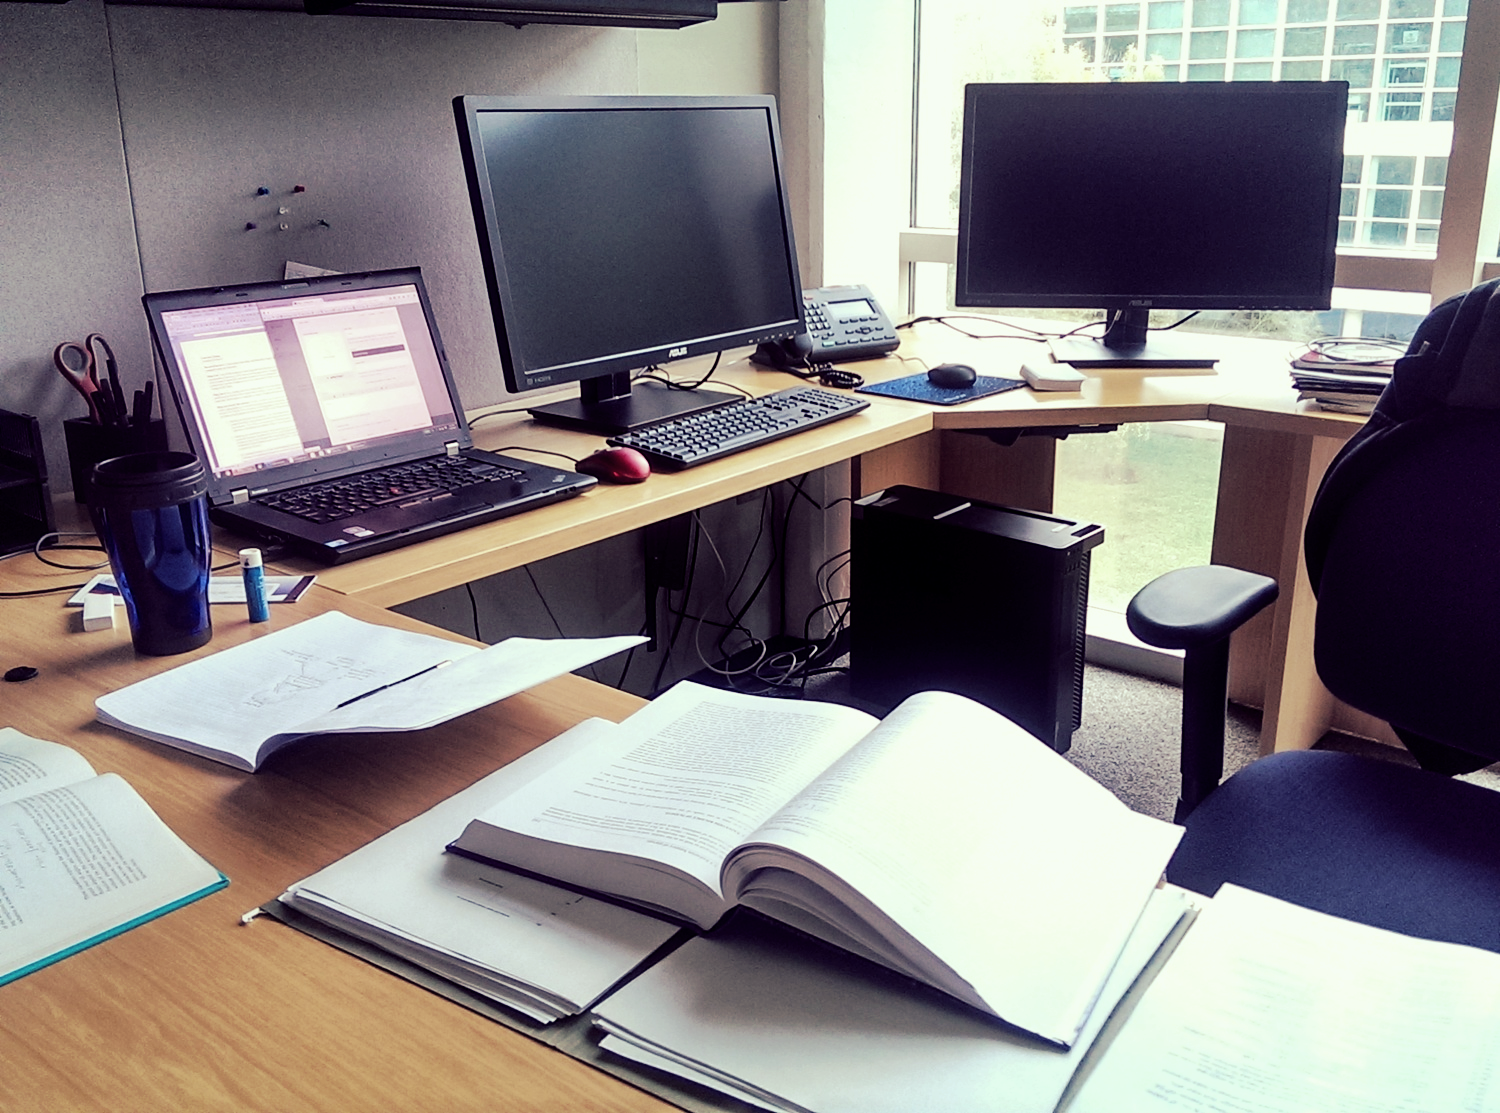 My desk is already a mess.